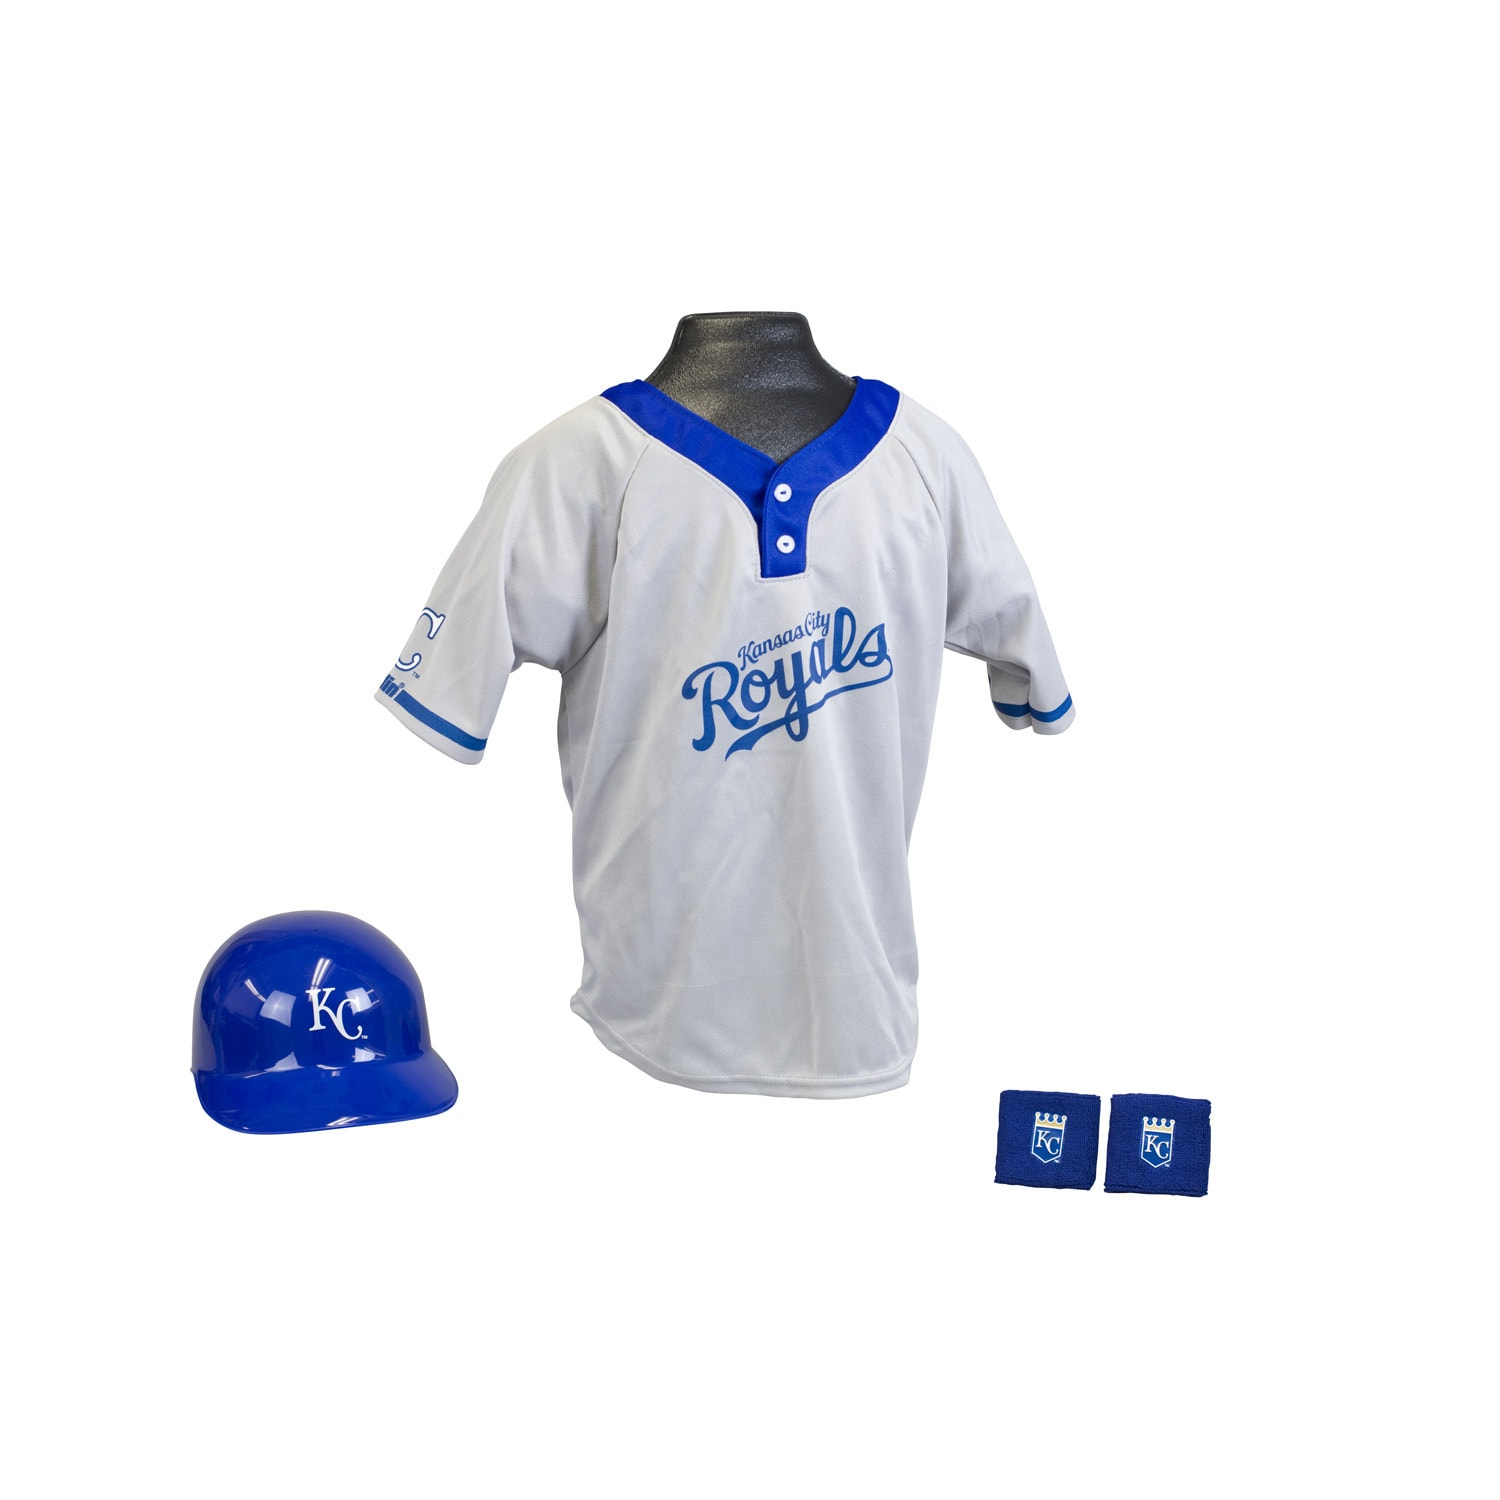 Franklin Sports Kids MLB Royals Team Set